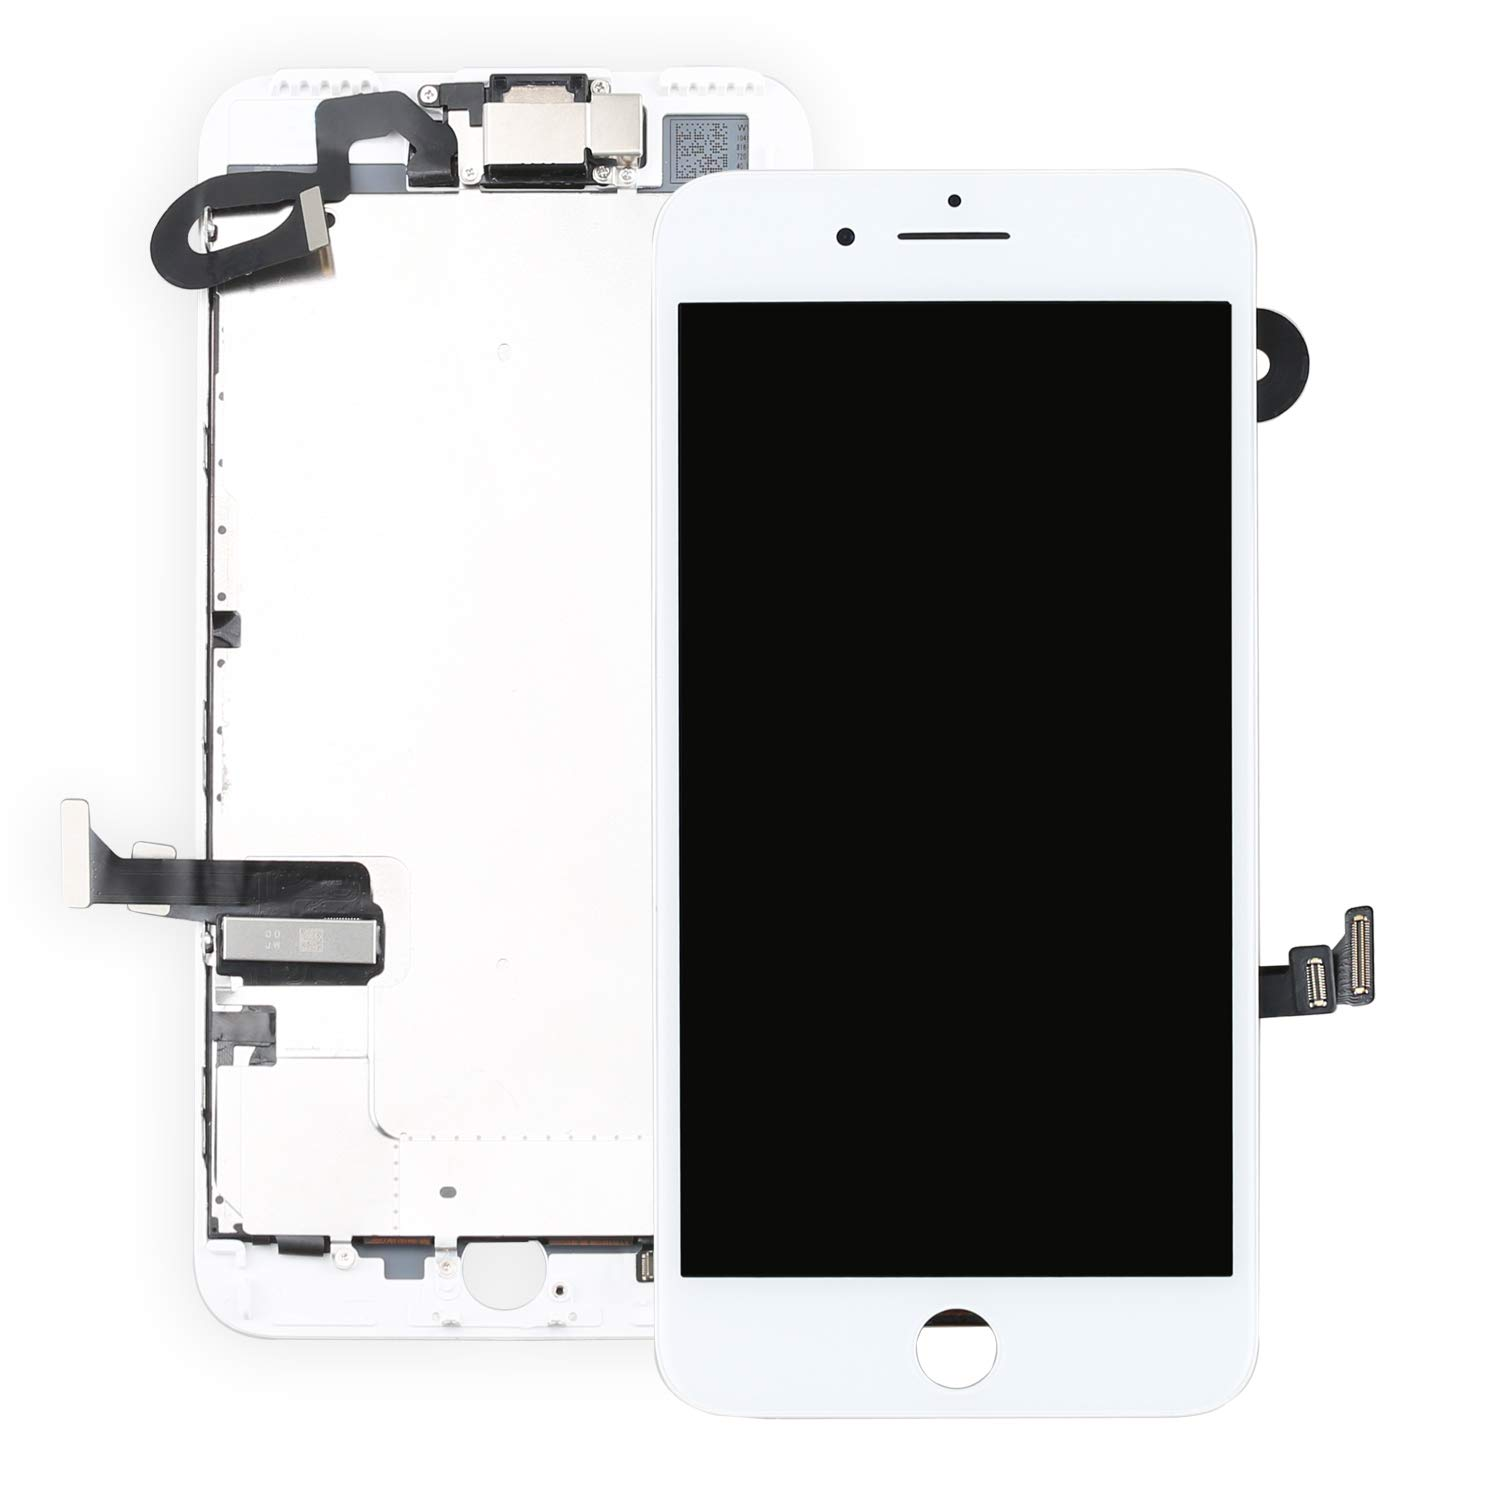 for iPhone 7 Plus 5.5'' Screen Replacement White- Ayake Full LCD Display Assembly with Front Facing Camera, Earpiece Speaker Pre Assembled and Repair Tool Kits